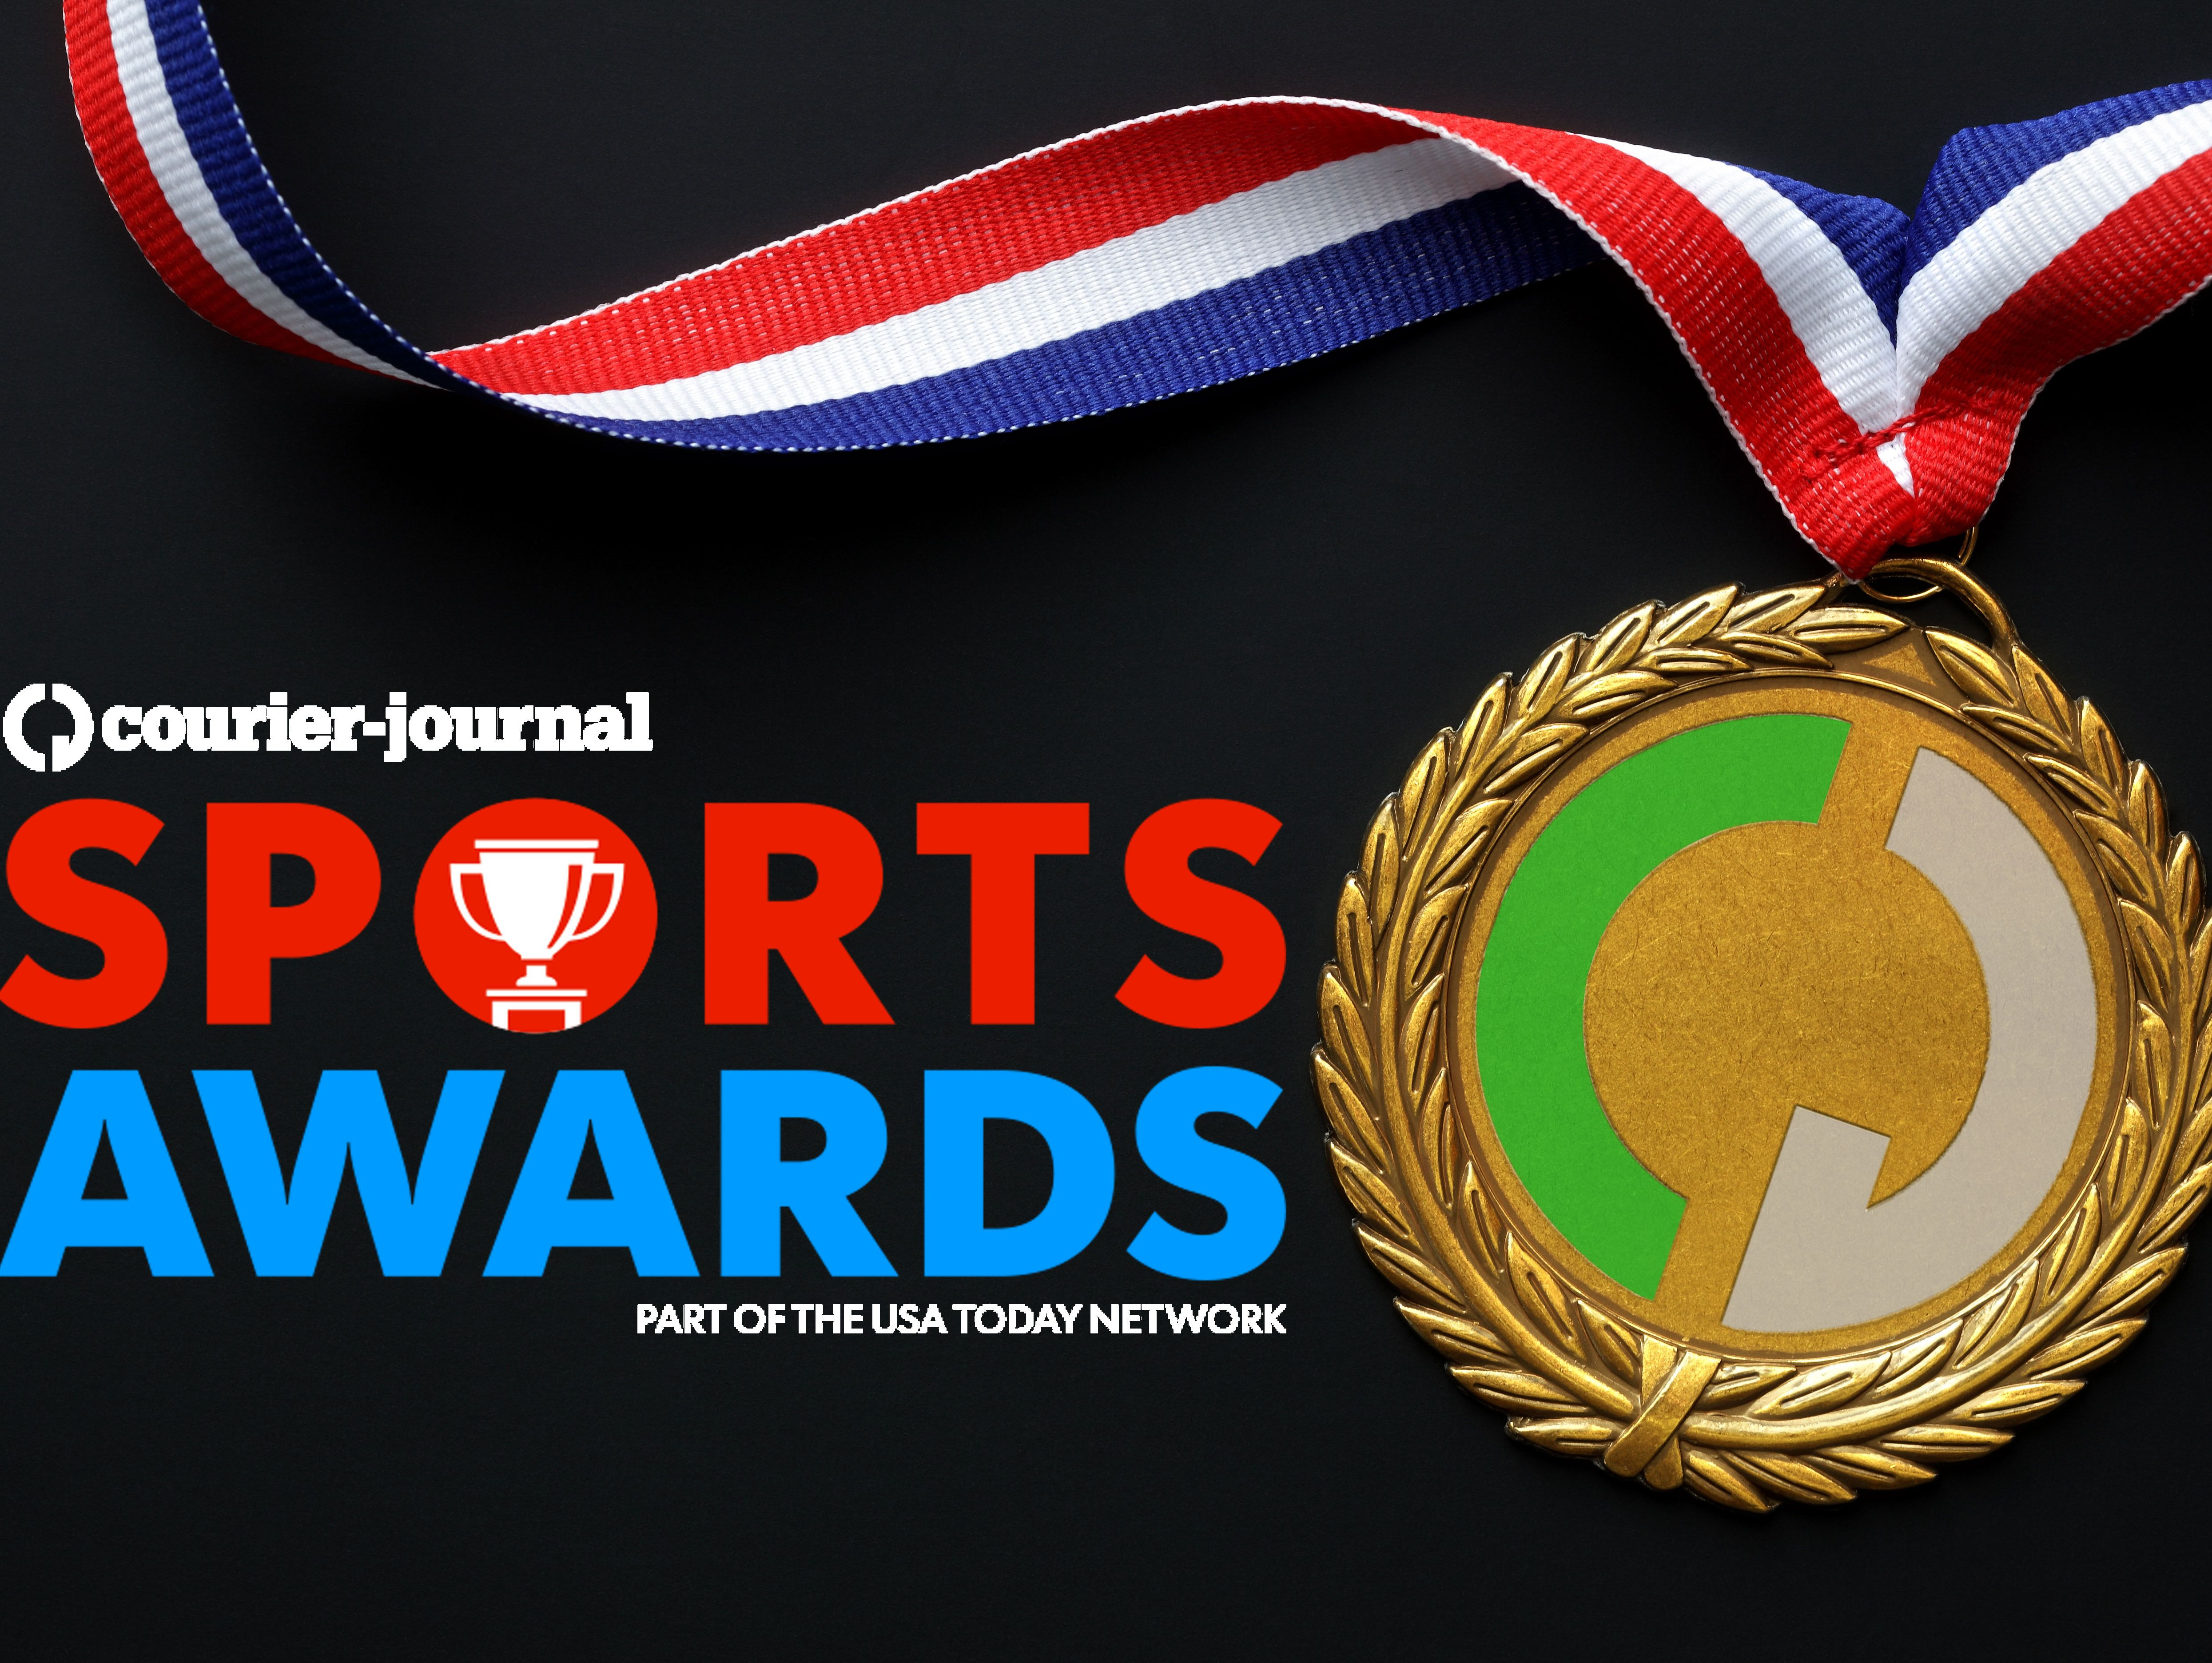 The Courier-Journal Sports Awards